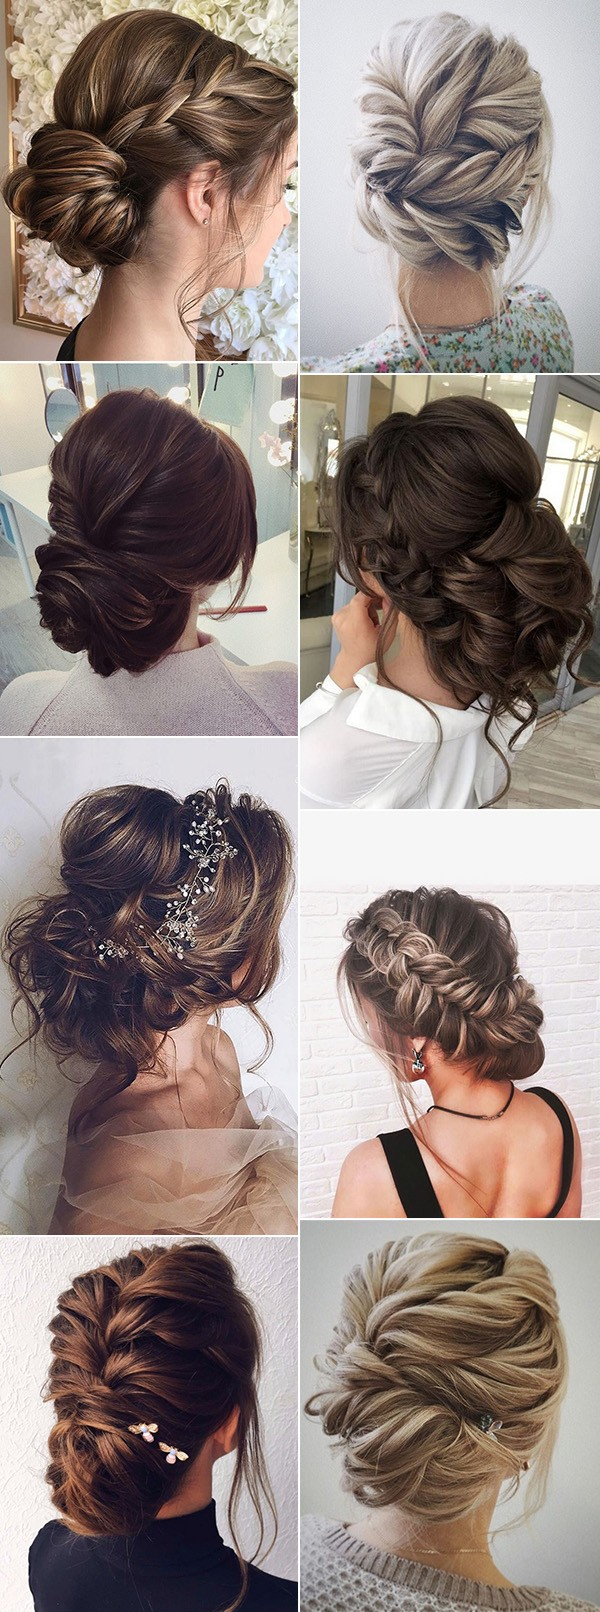 bridal updo wedding hairstyle ideas for 2019 trends